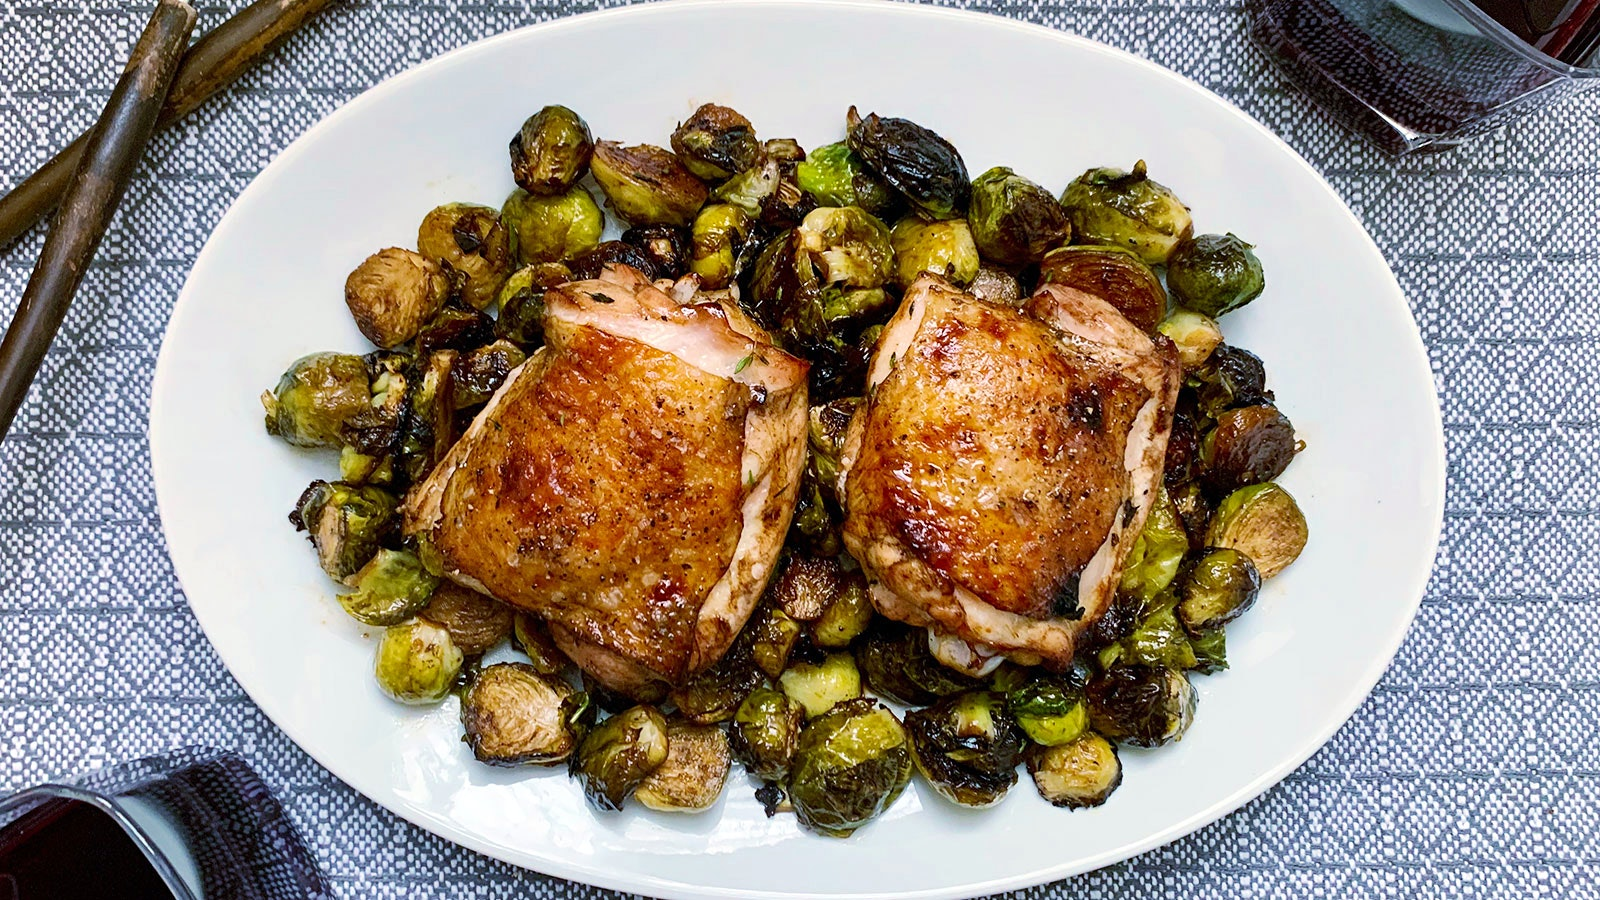 Two crispy-skinned chicken thighs on a white plate with balsamic-roasted brussels sprouts